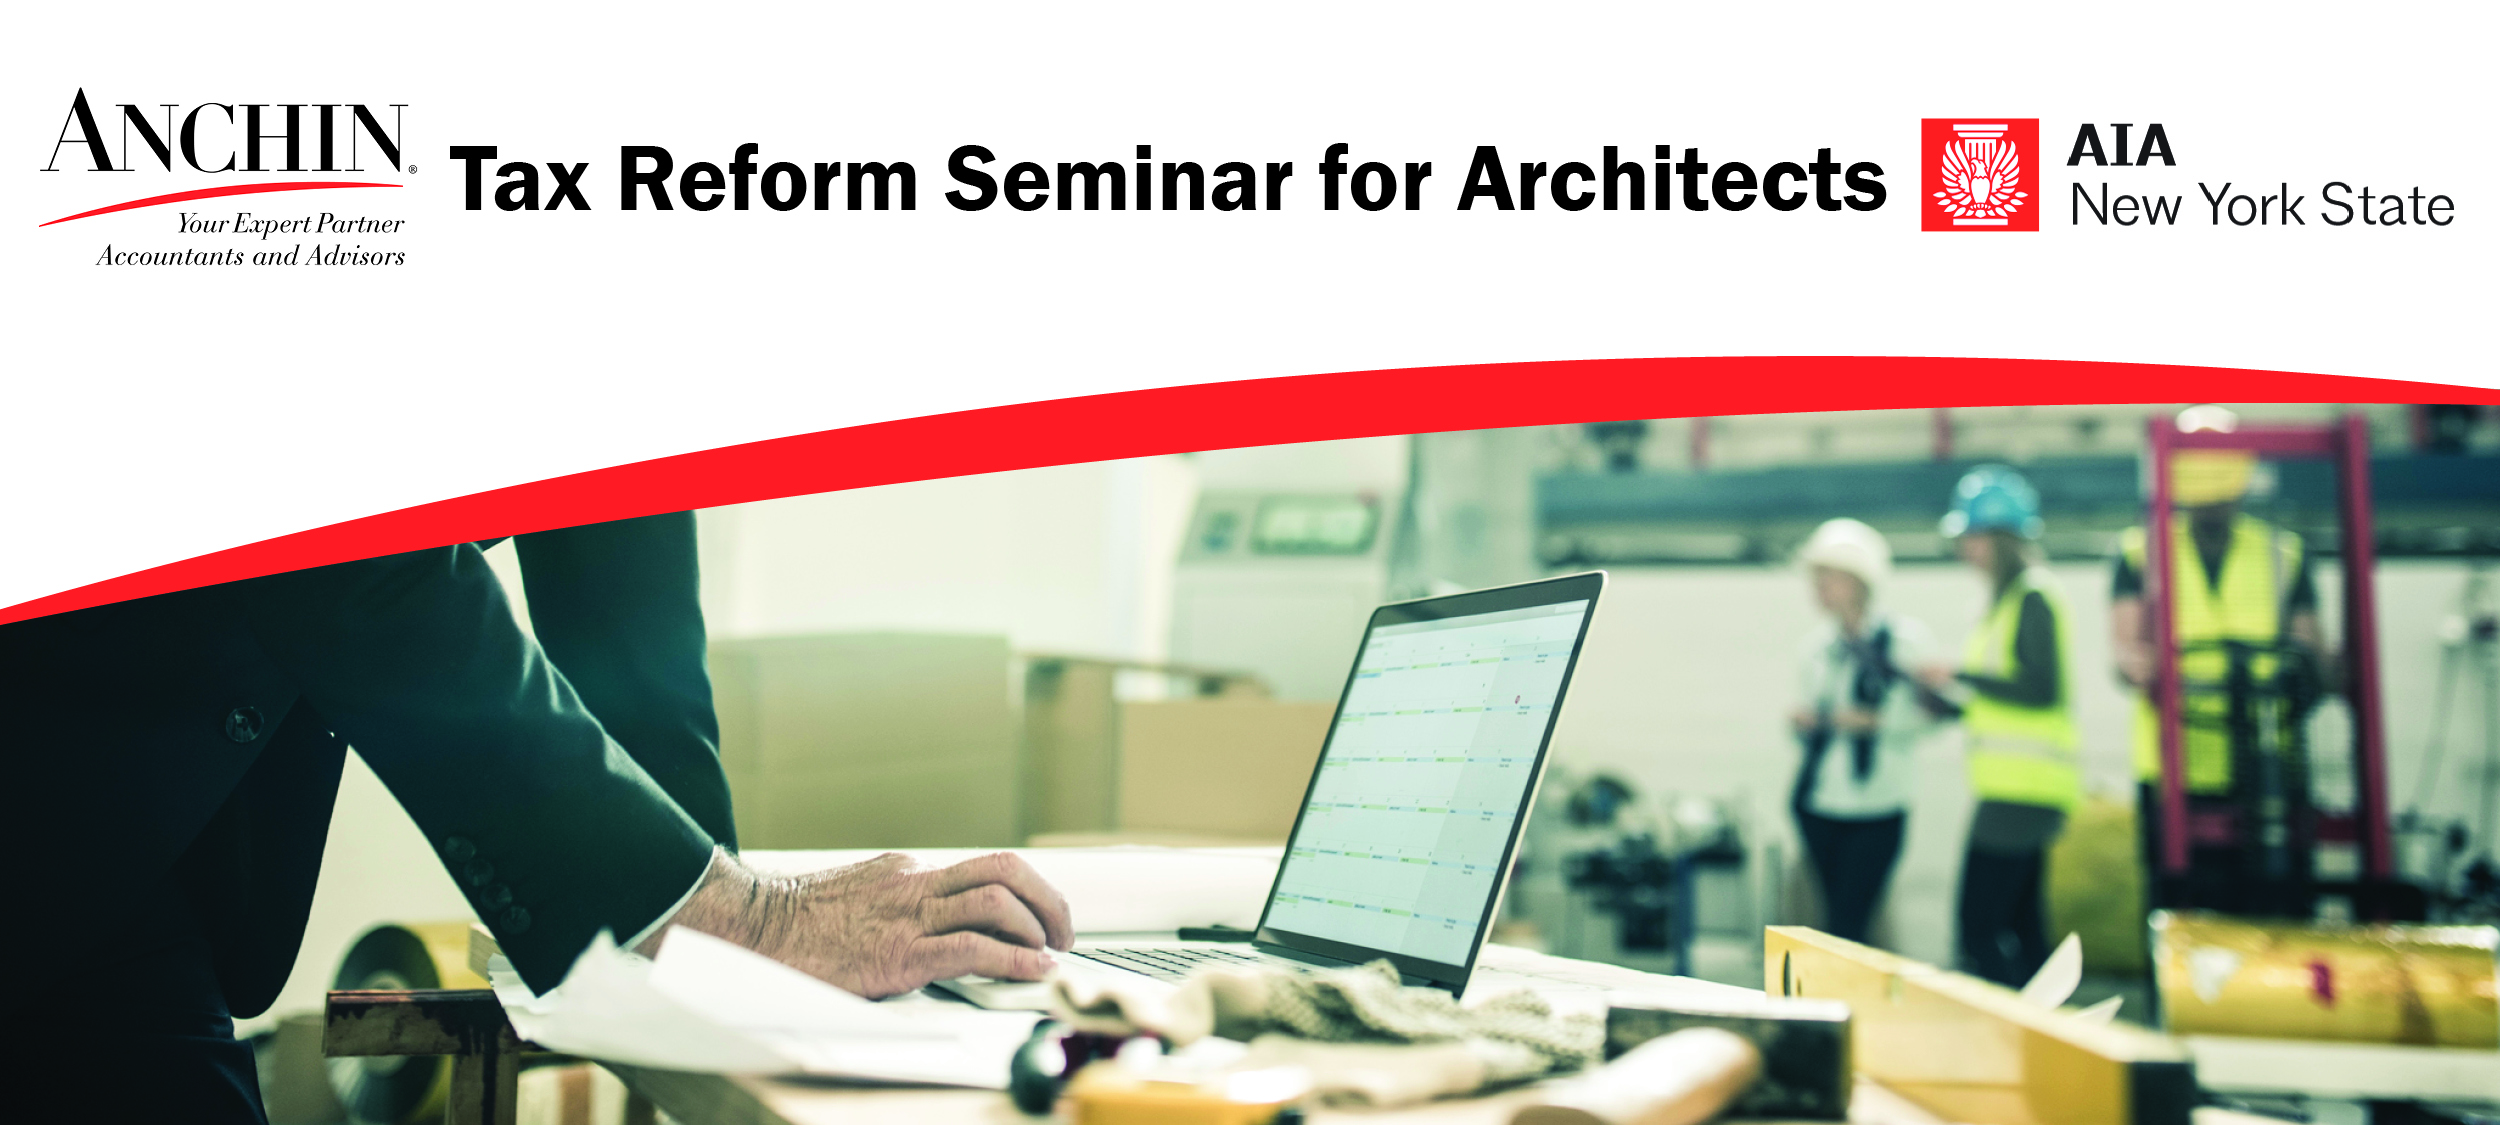 Webinar: Tax Reform for Architects